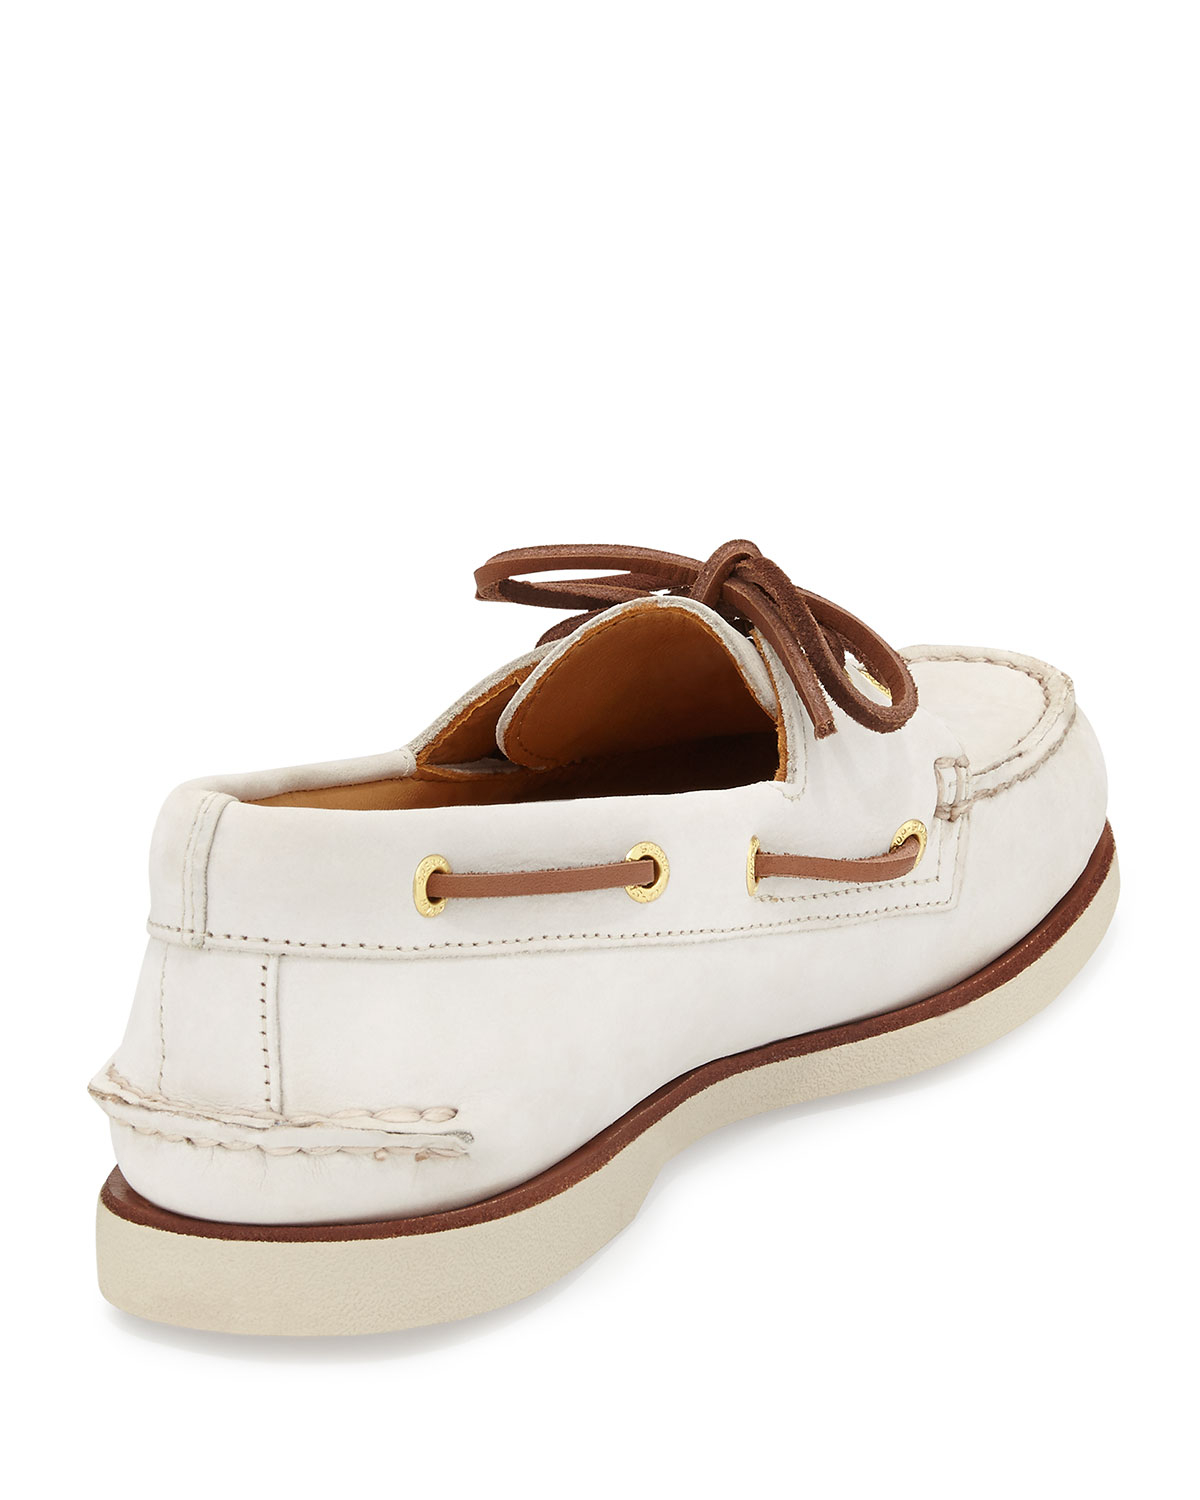 Sperry Gold Cup Shoes For Women